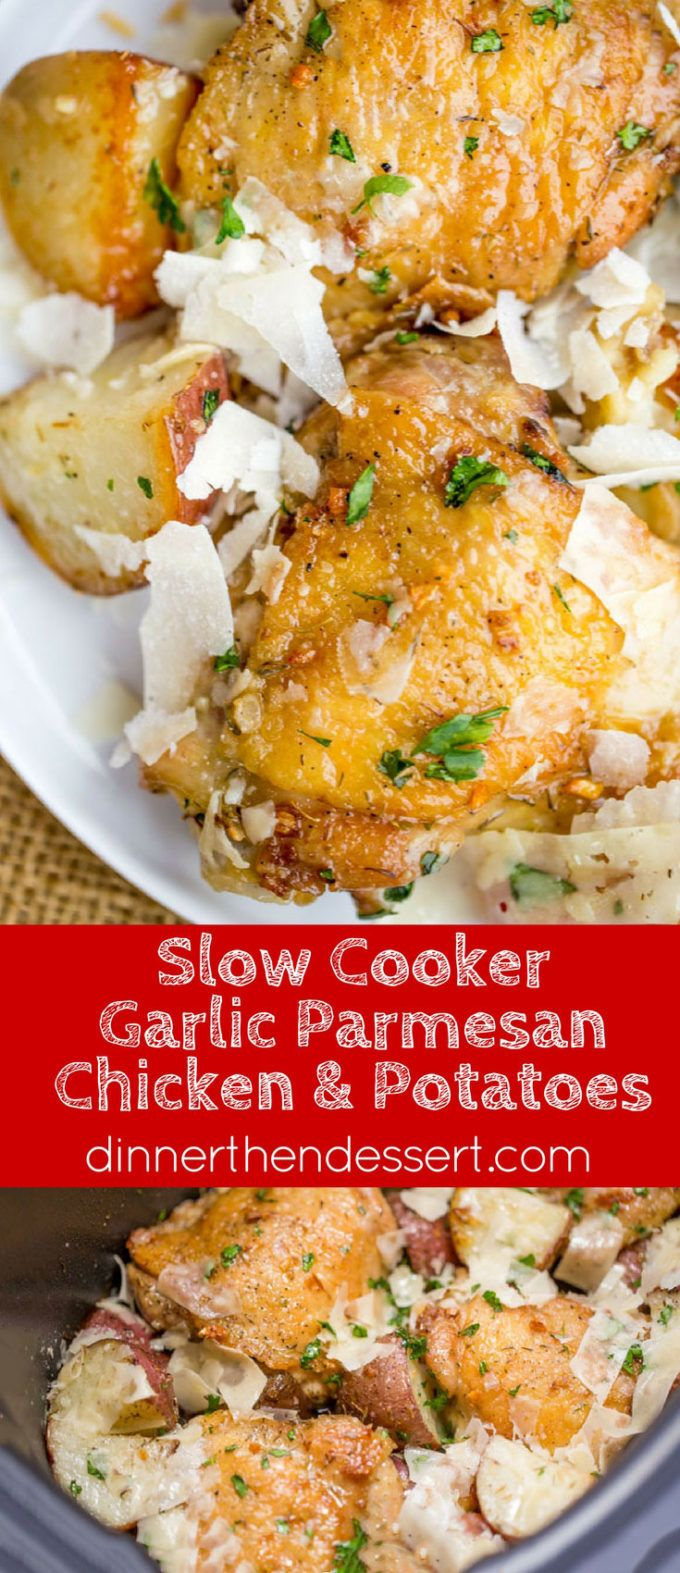 Slow Cooker Garlic Parmesan Chicken and Potatoes takes just a few minutes of prep and five ingredients. Crisp chicken thighs, buttery red potatoes and shaved Parmesan cheese make the perfect easy weeknight meal.